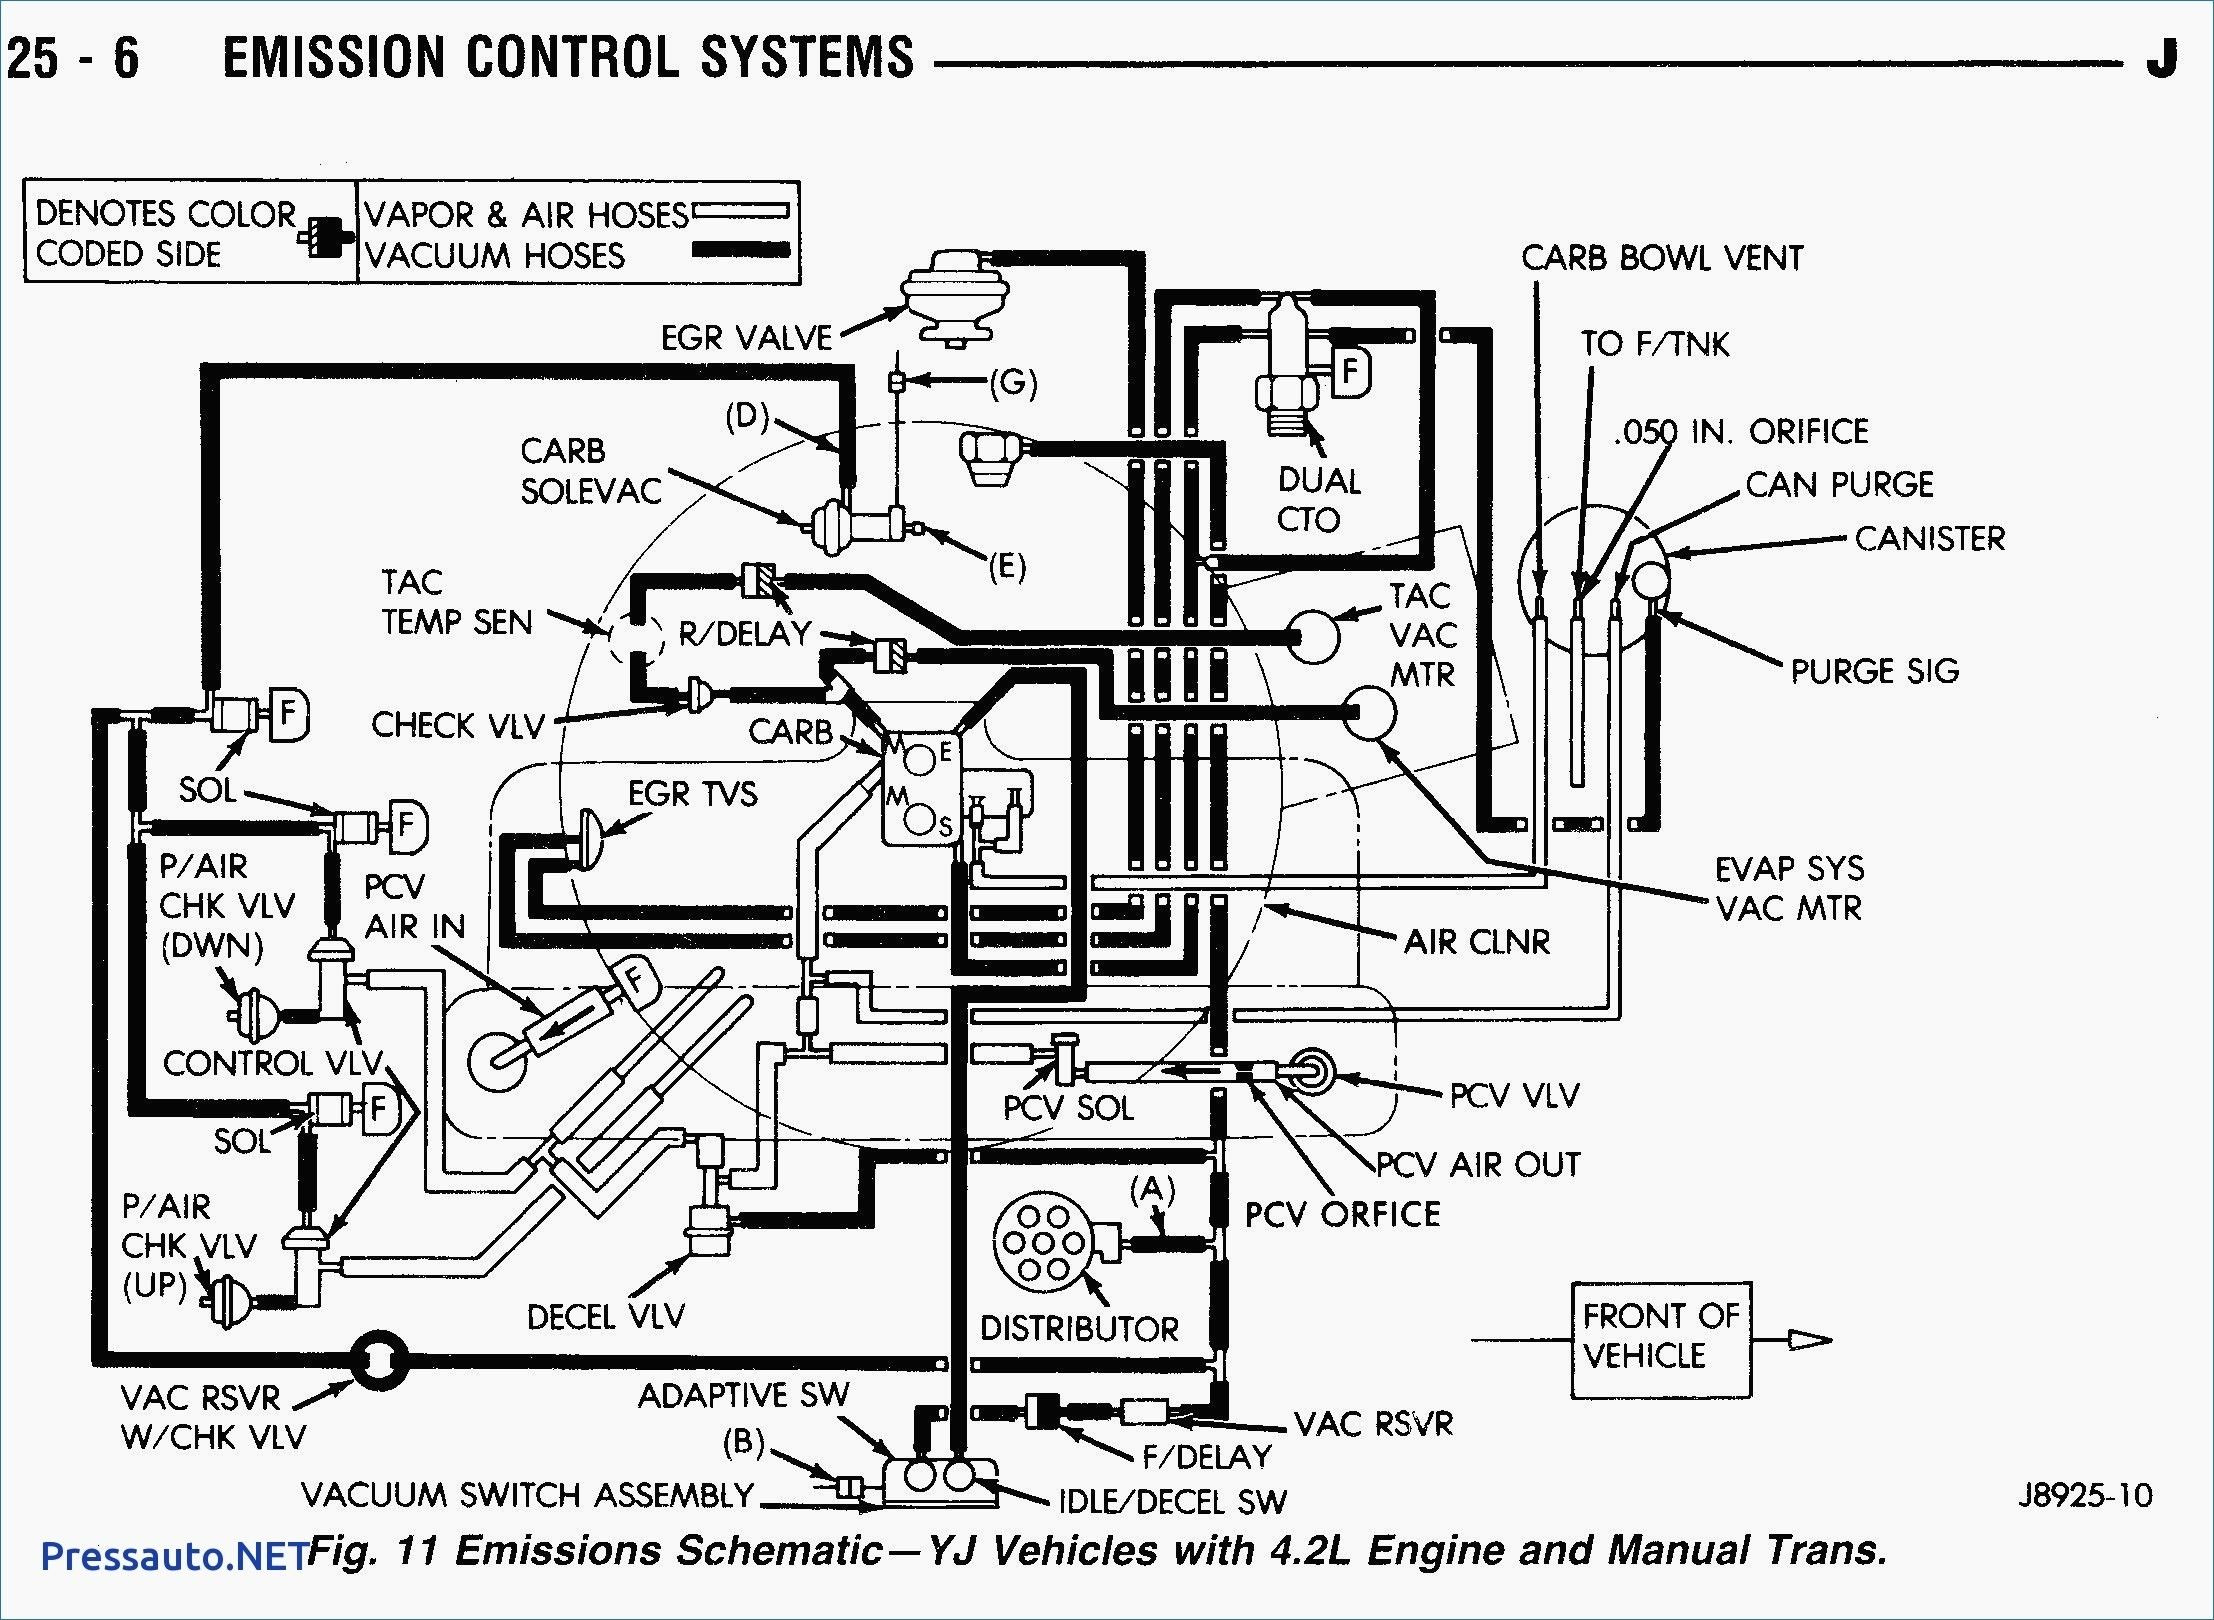 medium resolution of 1989 jeep yj engine diagram data wiring diagram 1989 jeep cherokee vacuum line diagram 1989 jeep wrangler yj ignition